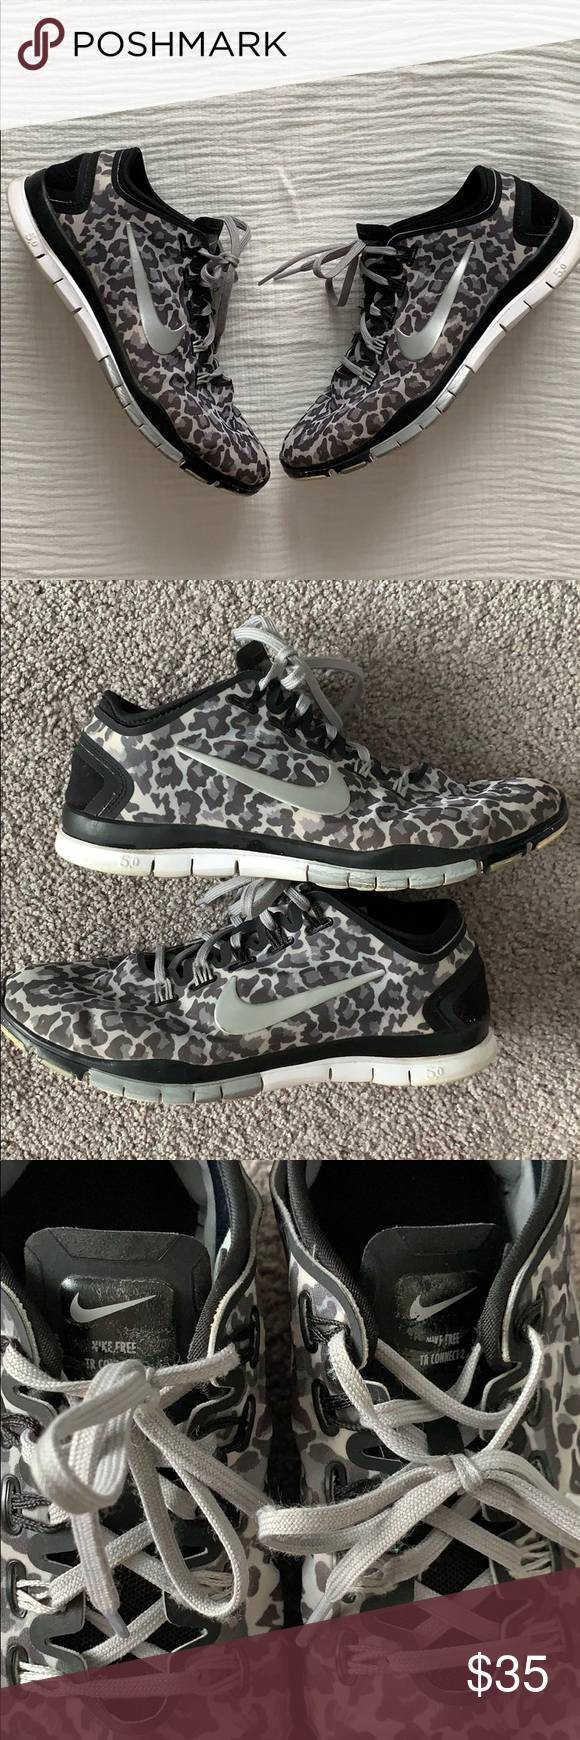 adefafce3815 Nike Free TR Connect 2 Leopard Fitness Sneakers NIKE Free TR Connect 2  sneakers in black